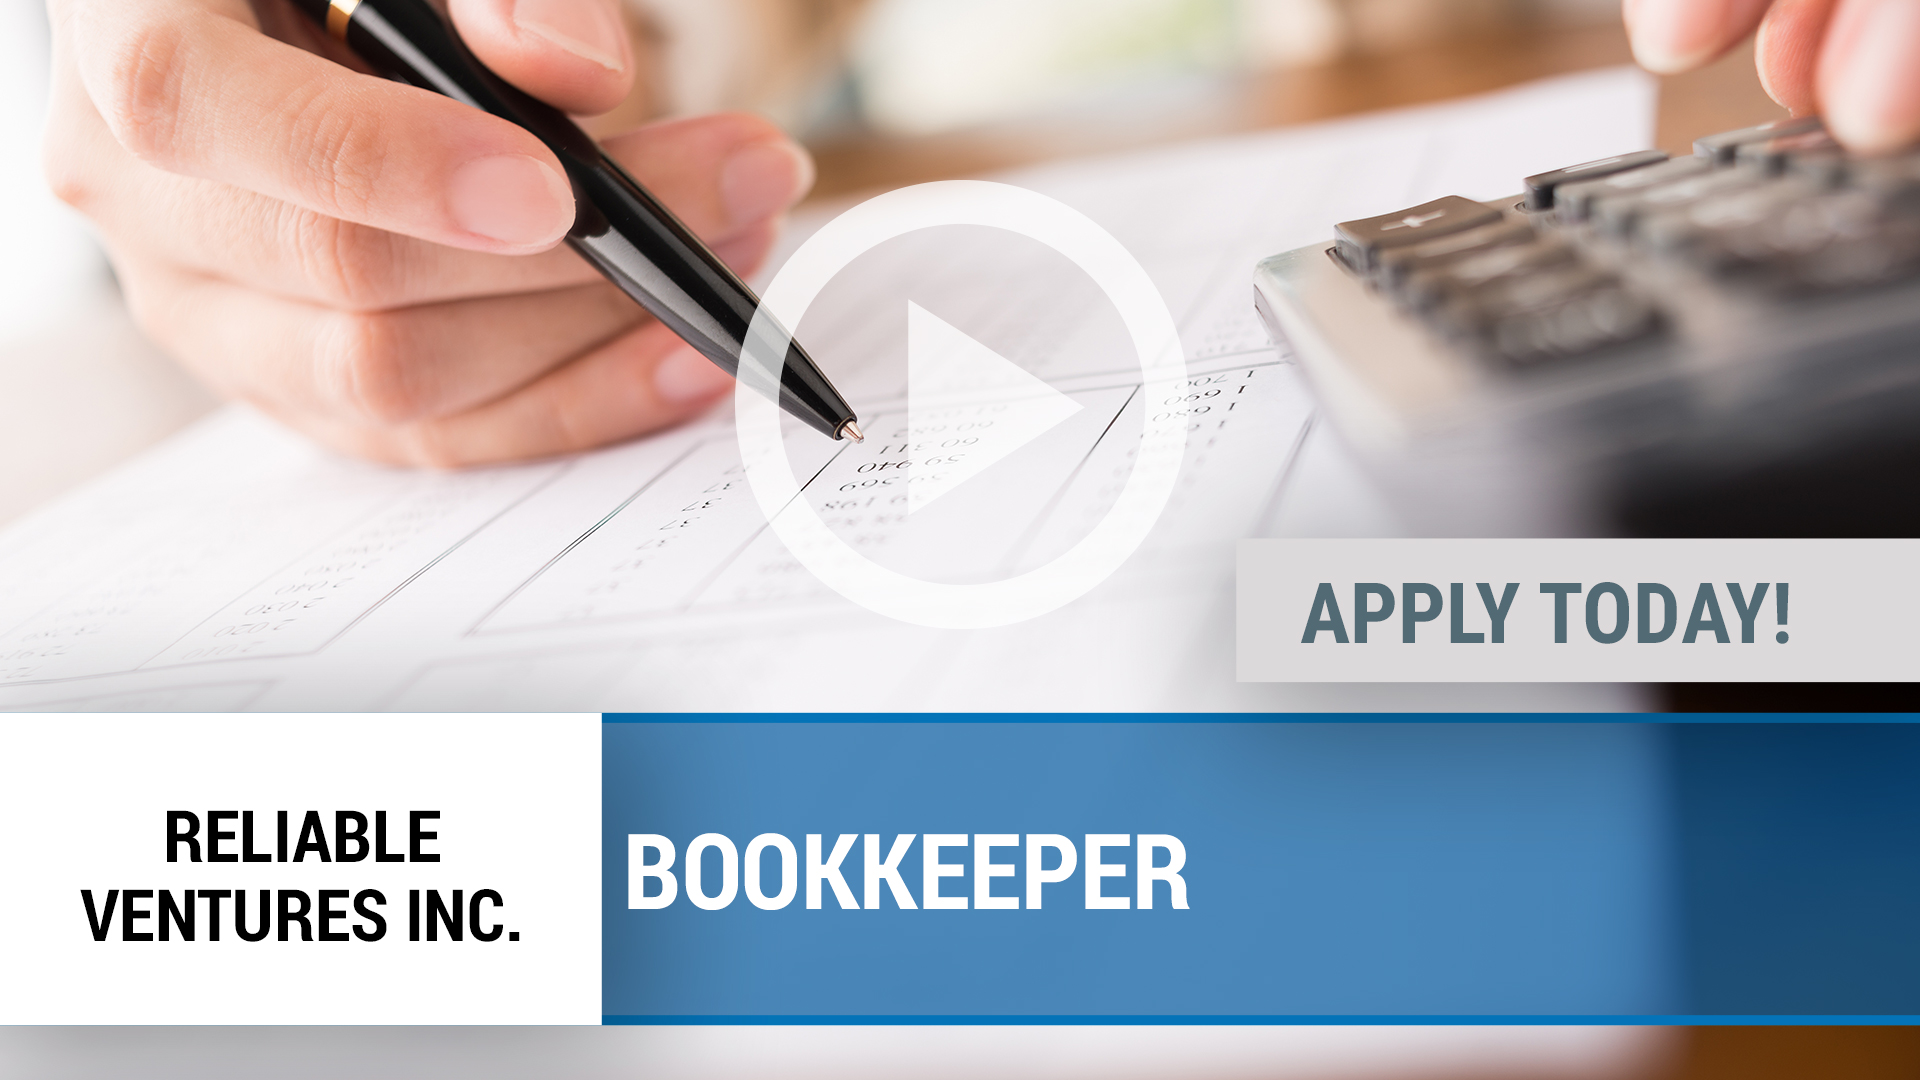 Watch our careers video for available job opening Bookkeeper in Dallas, TX